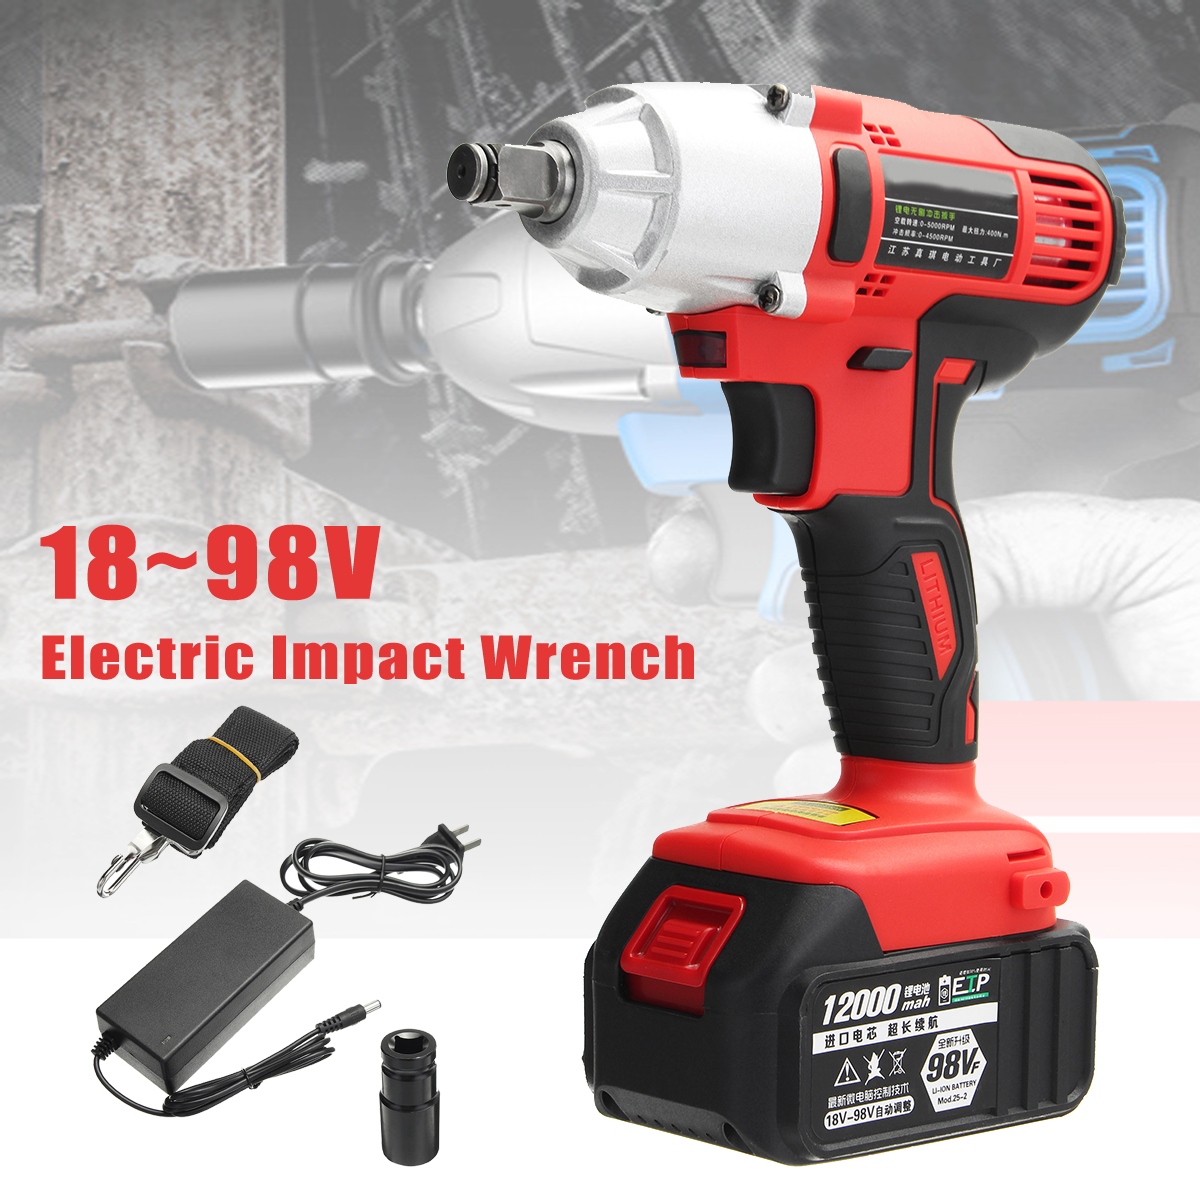 где купить Electric Wrench 98V Lithium-Ion Cordless Impact 400Nm Wrench Brushless Motor Power Wrench Tools дешево